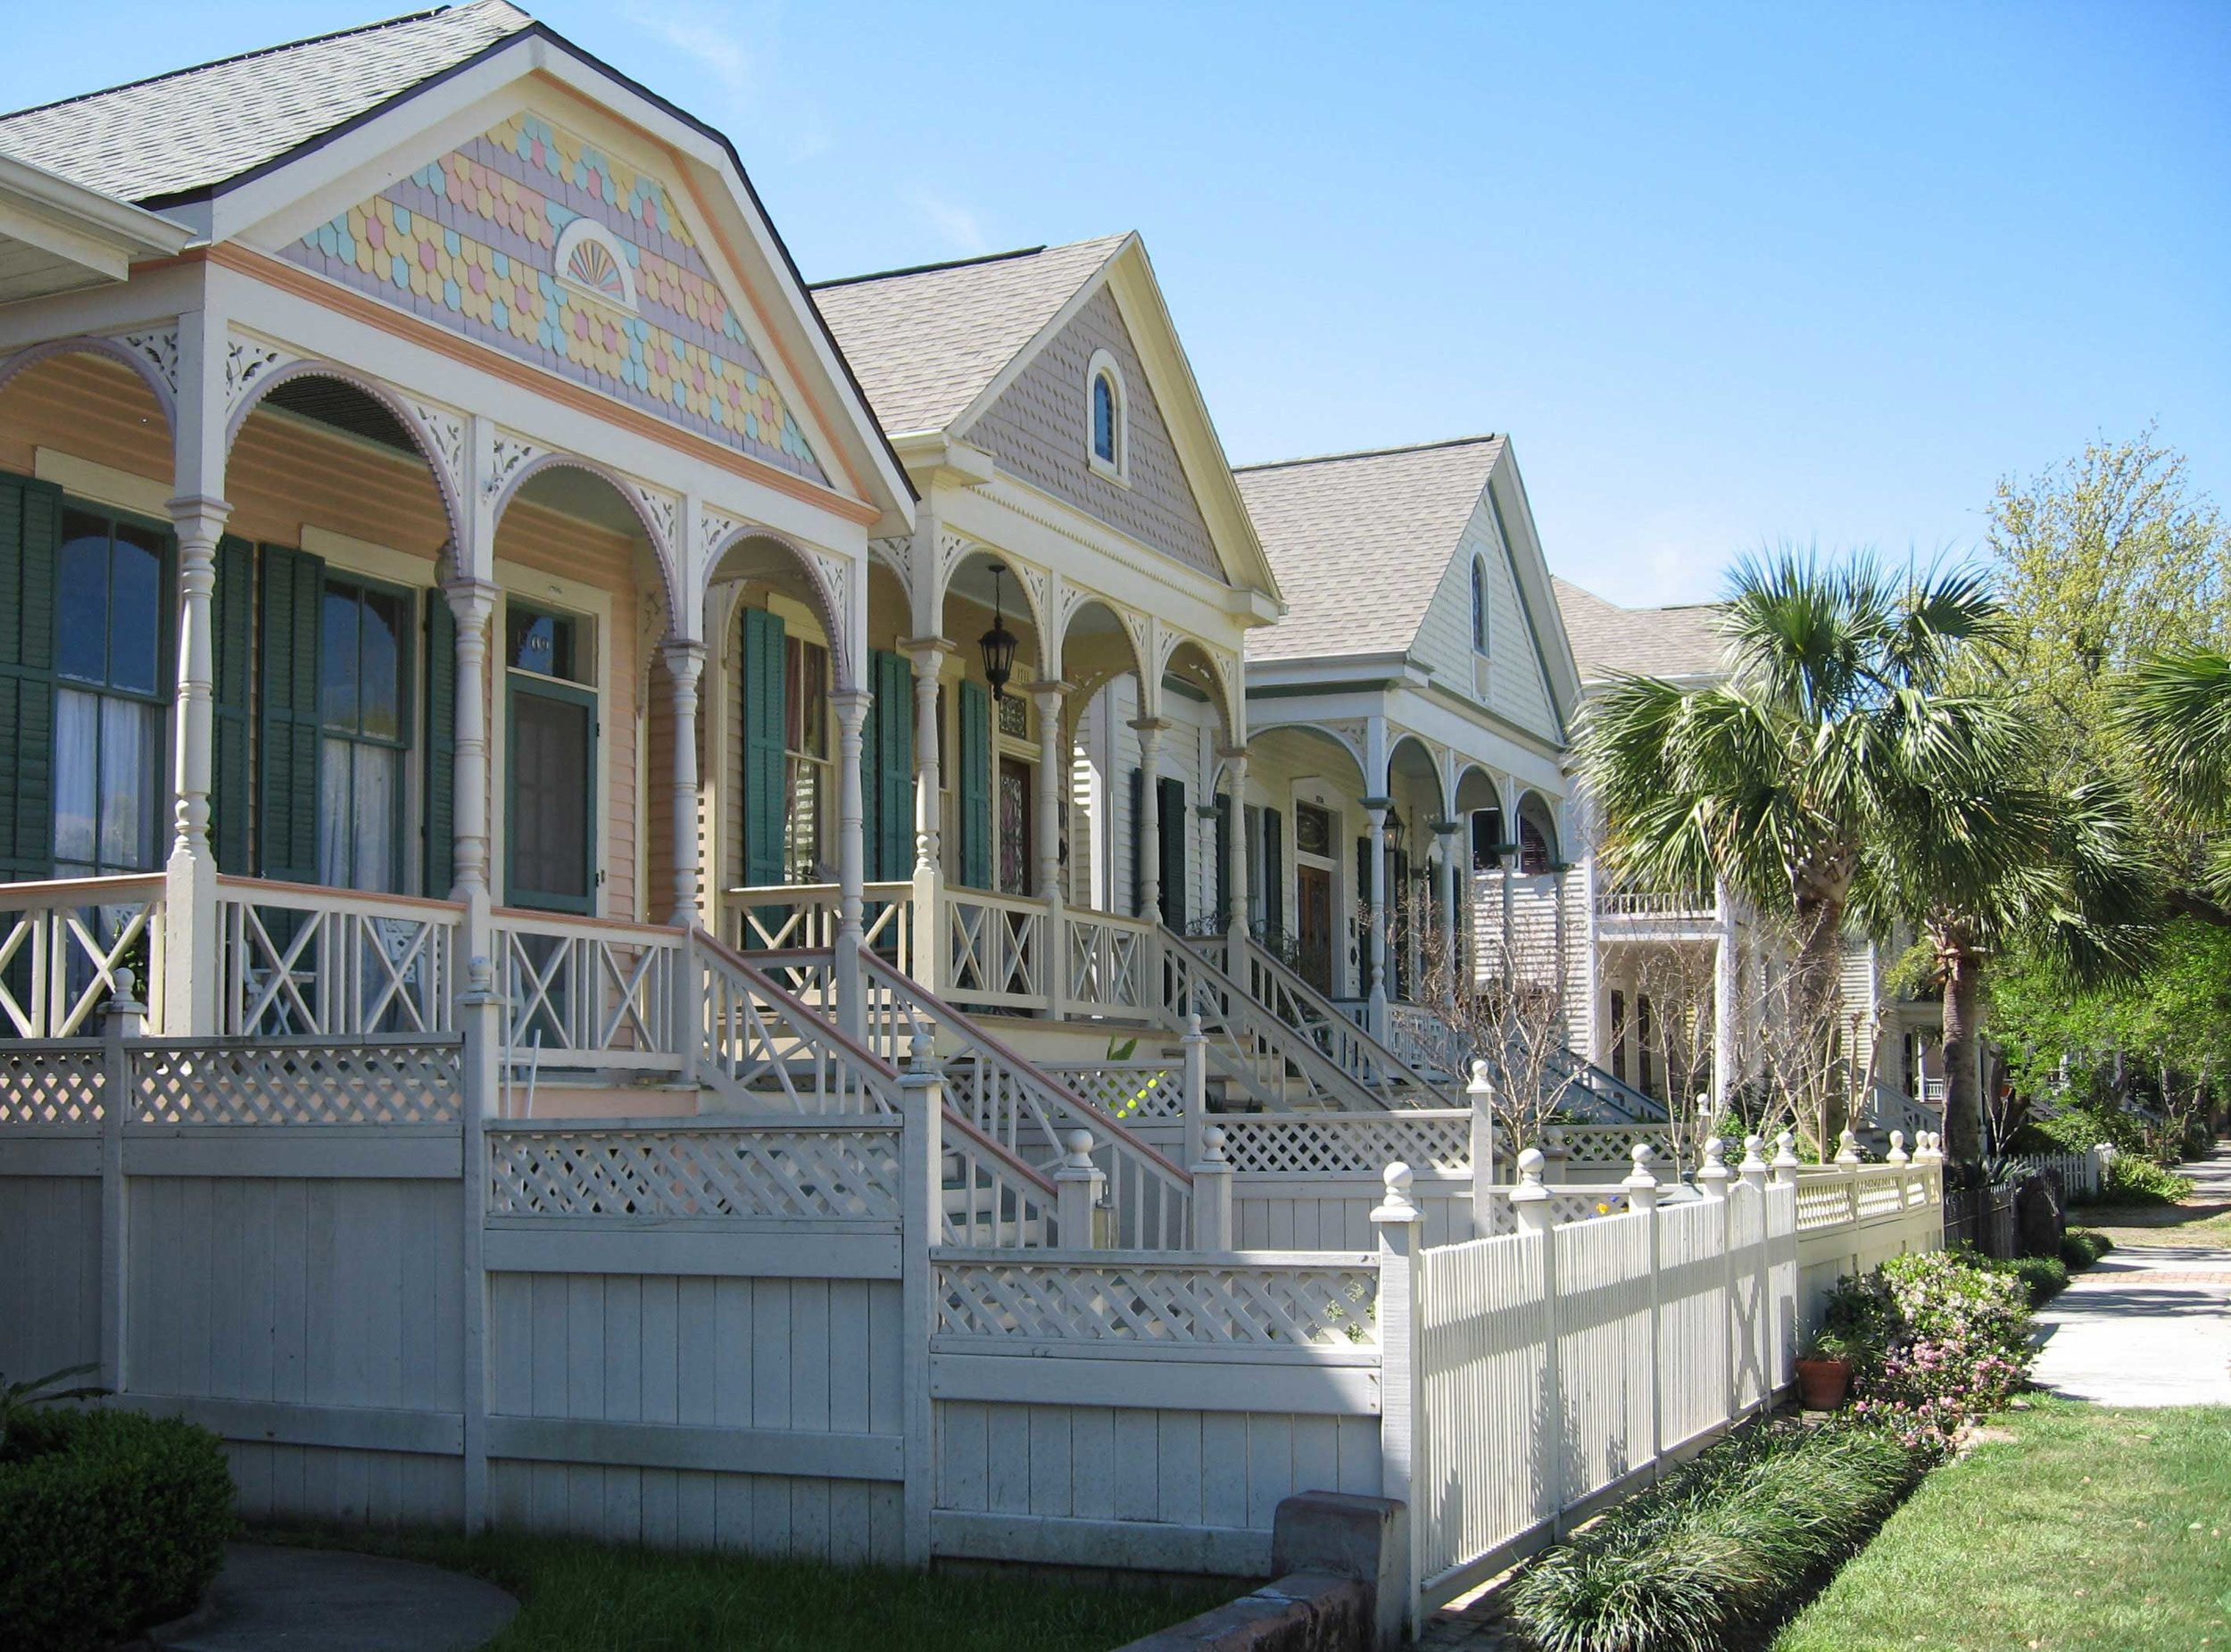 Galveston Historic East End - Victorian homes